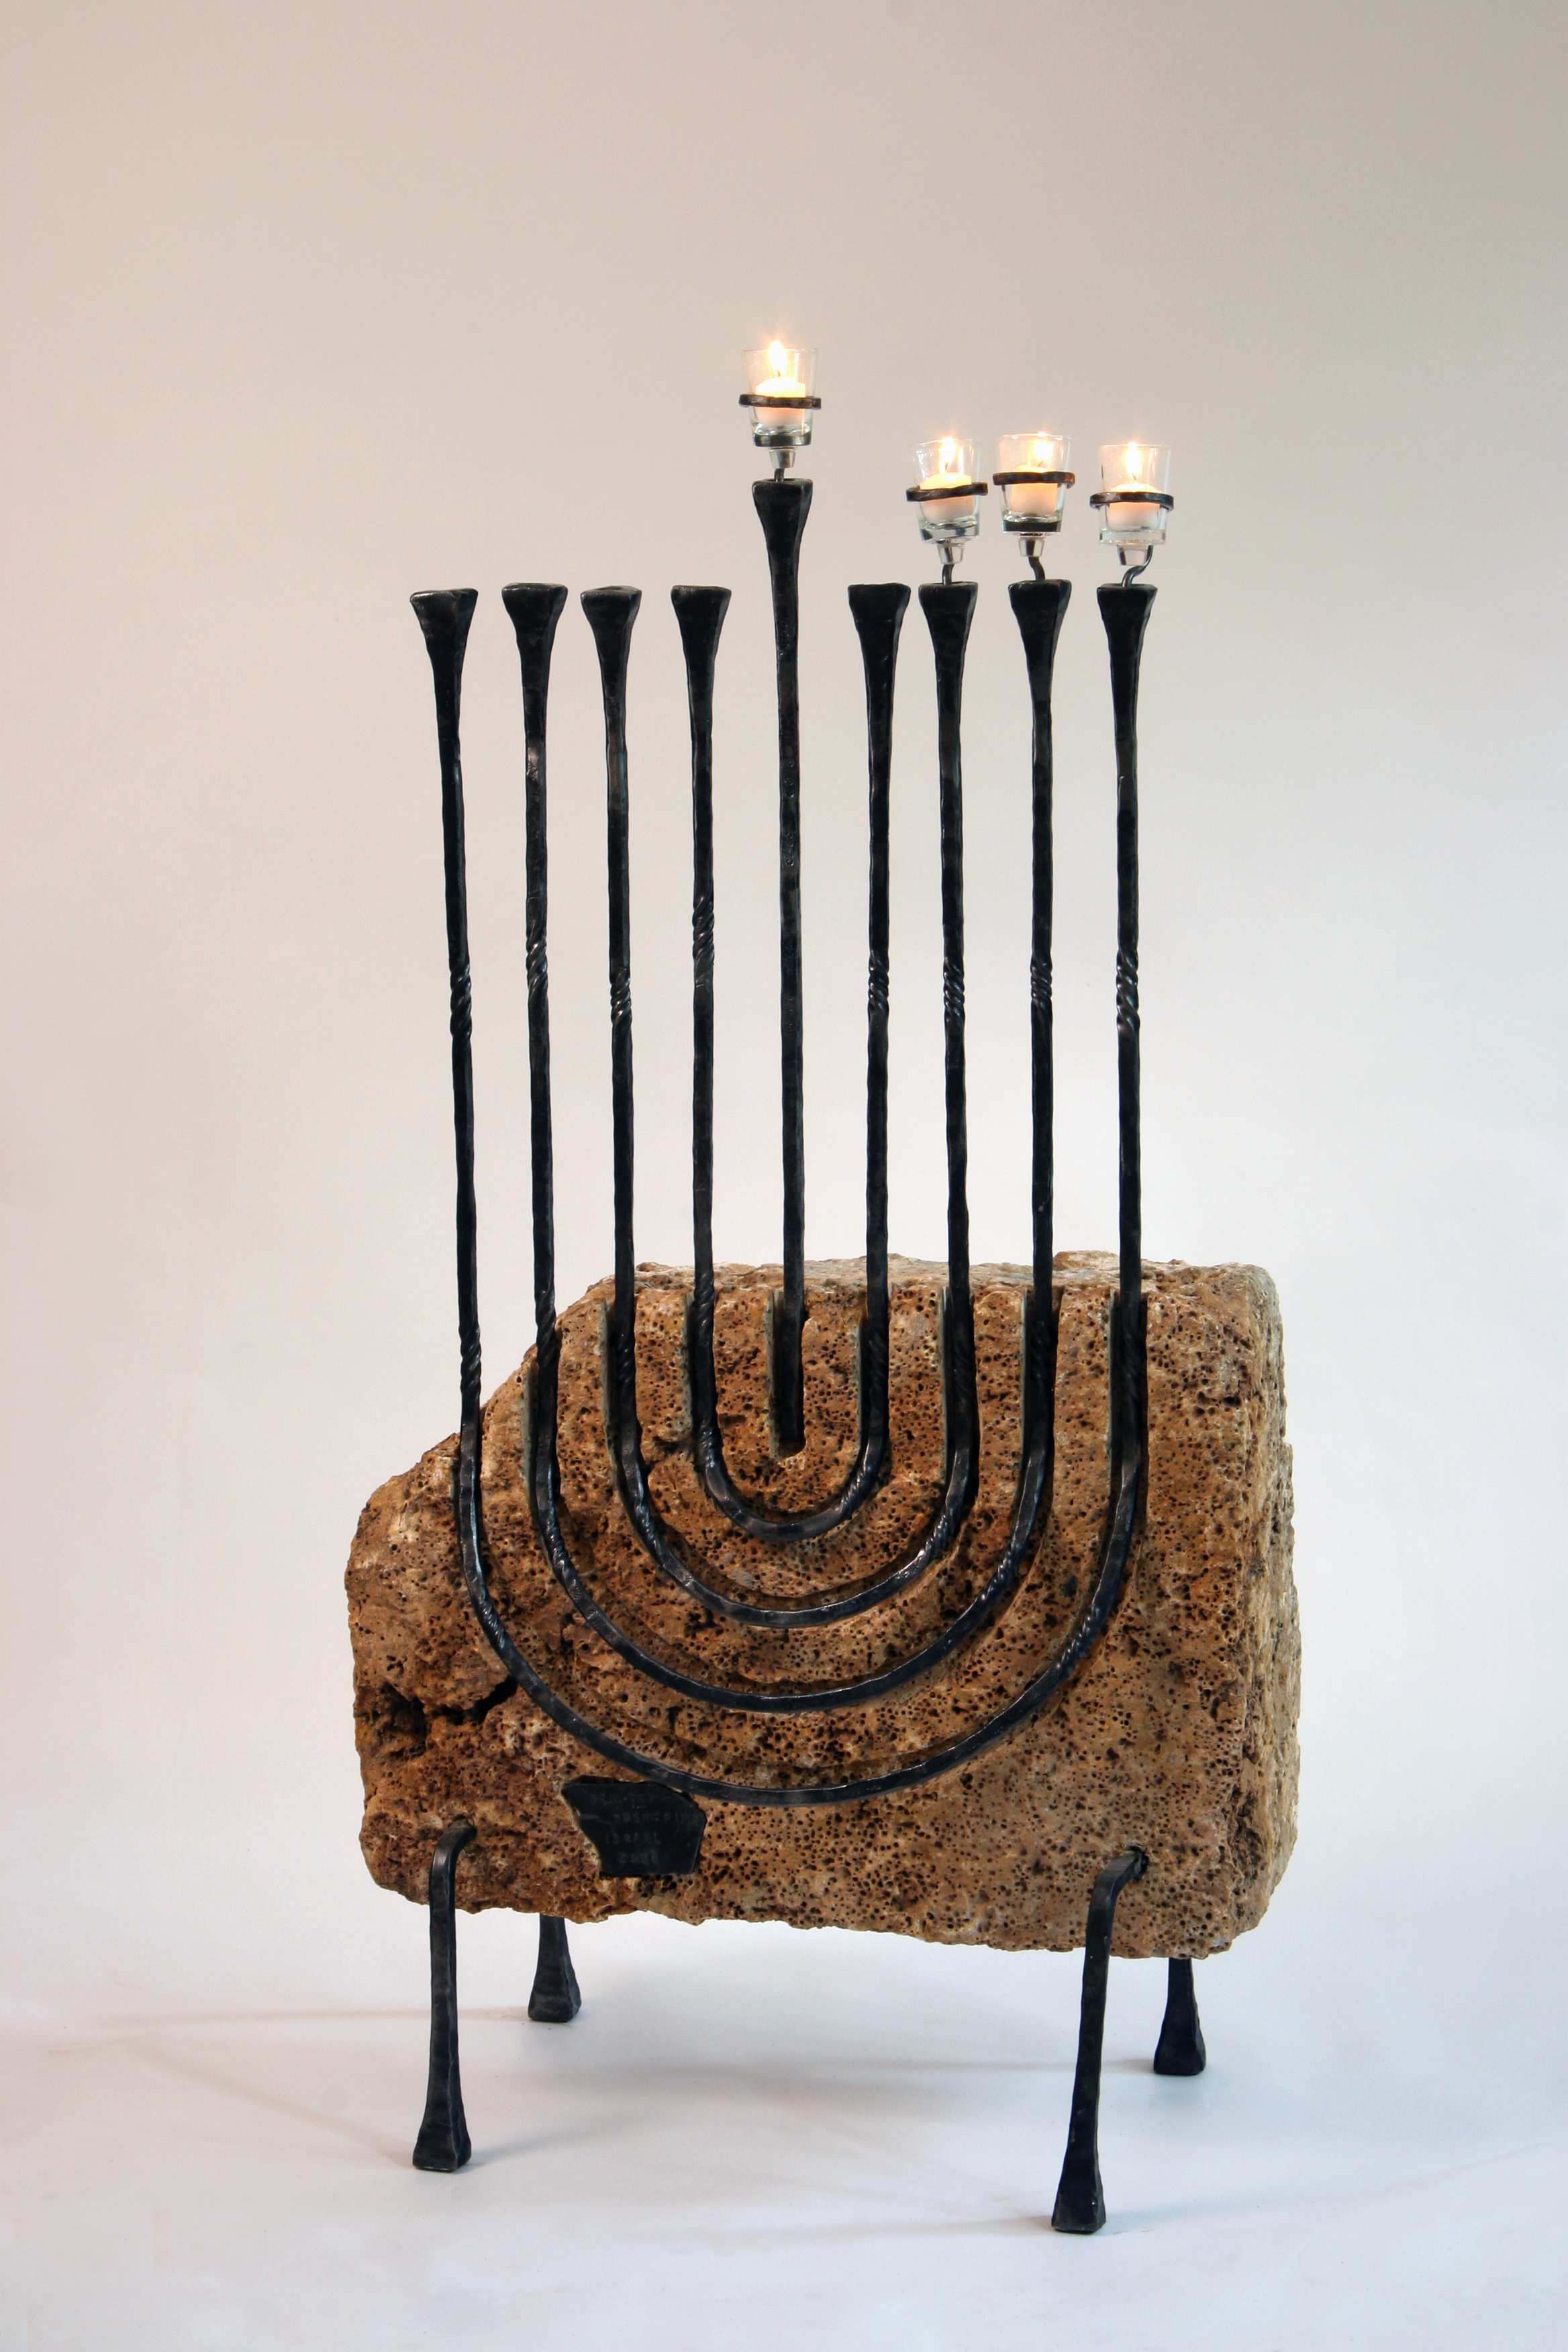 'Maccabee menorah' - Hanukkah menorah of Iron & Jerusalem Stone